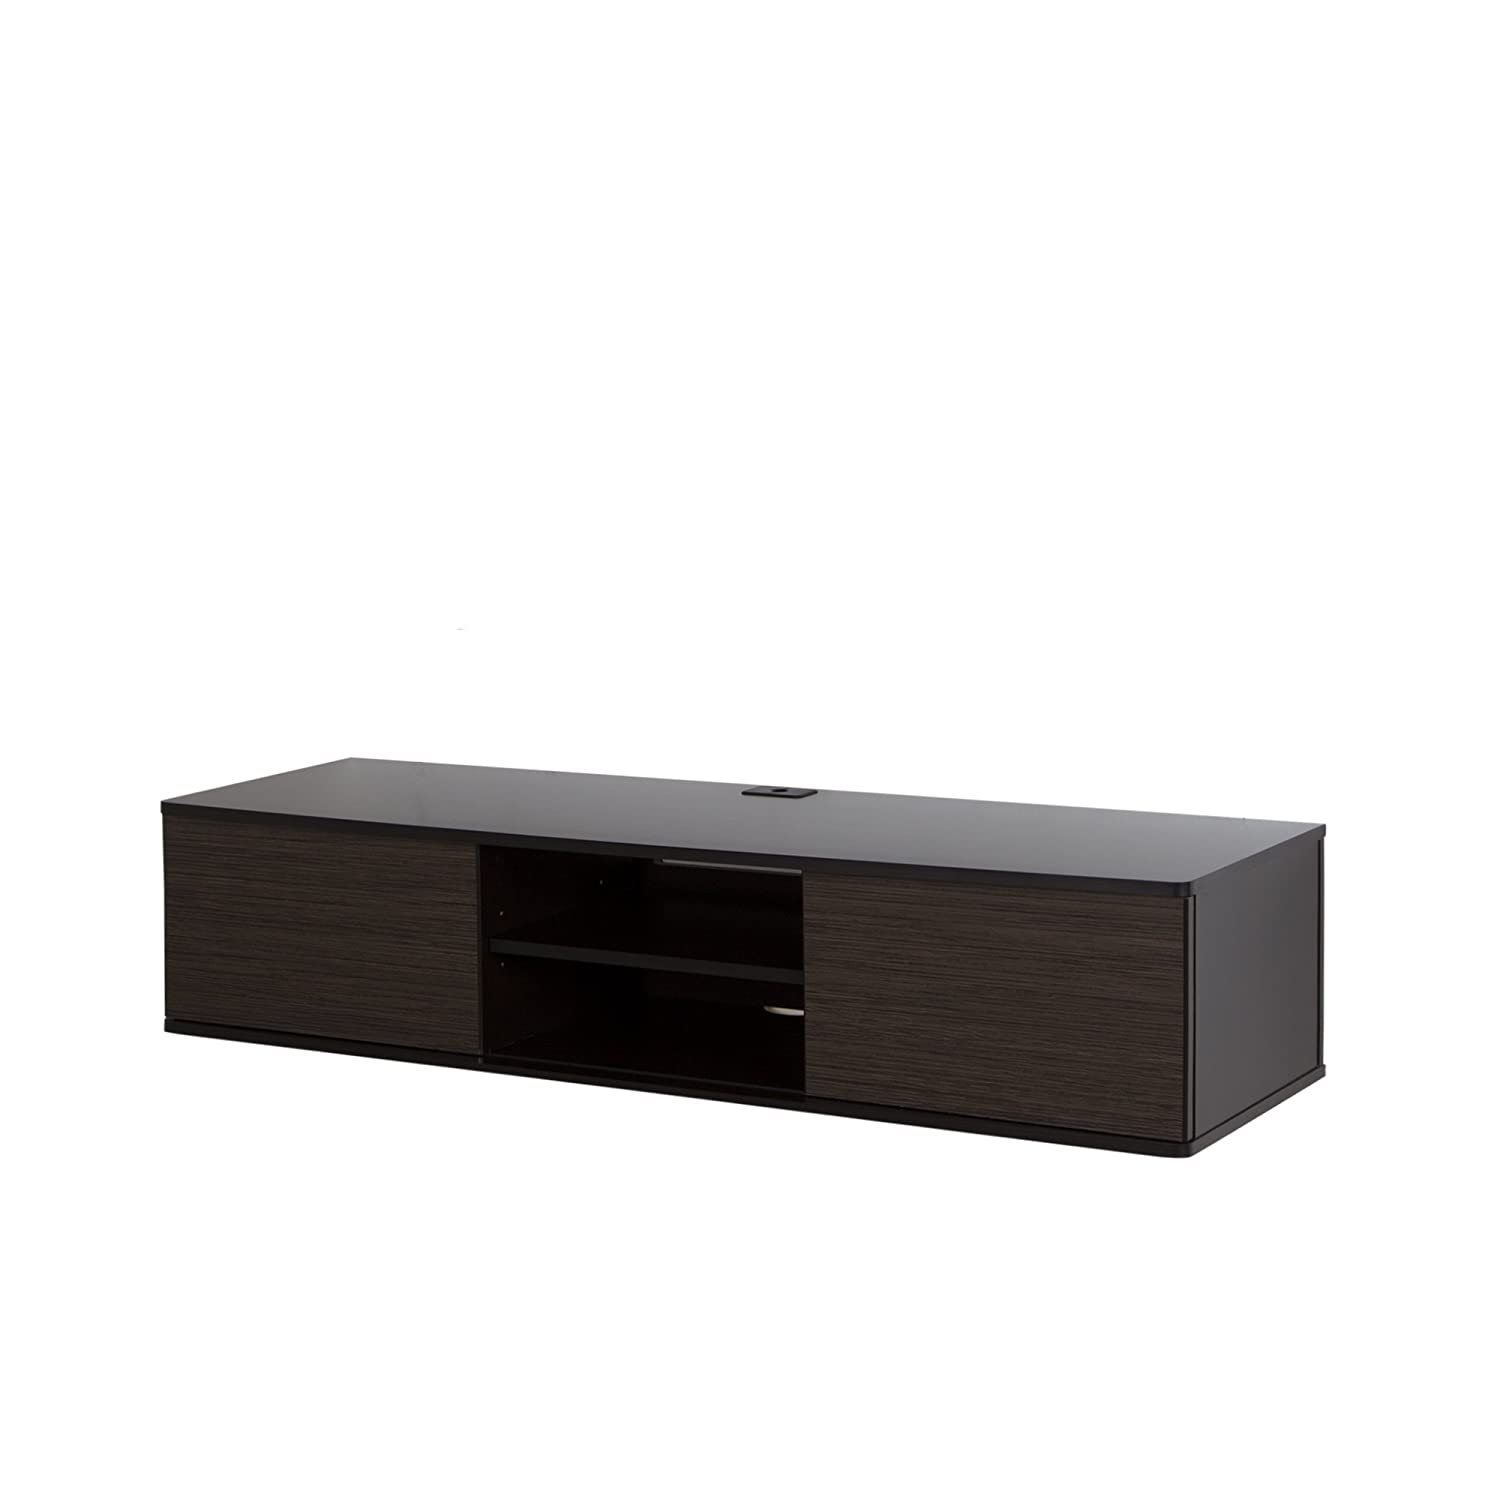 South Shore Furniture Agora Wall Mounted Media Console 56 Inch  # But Meuble Tv Noir